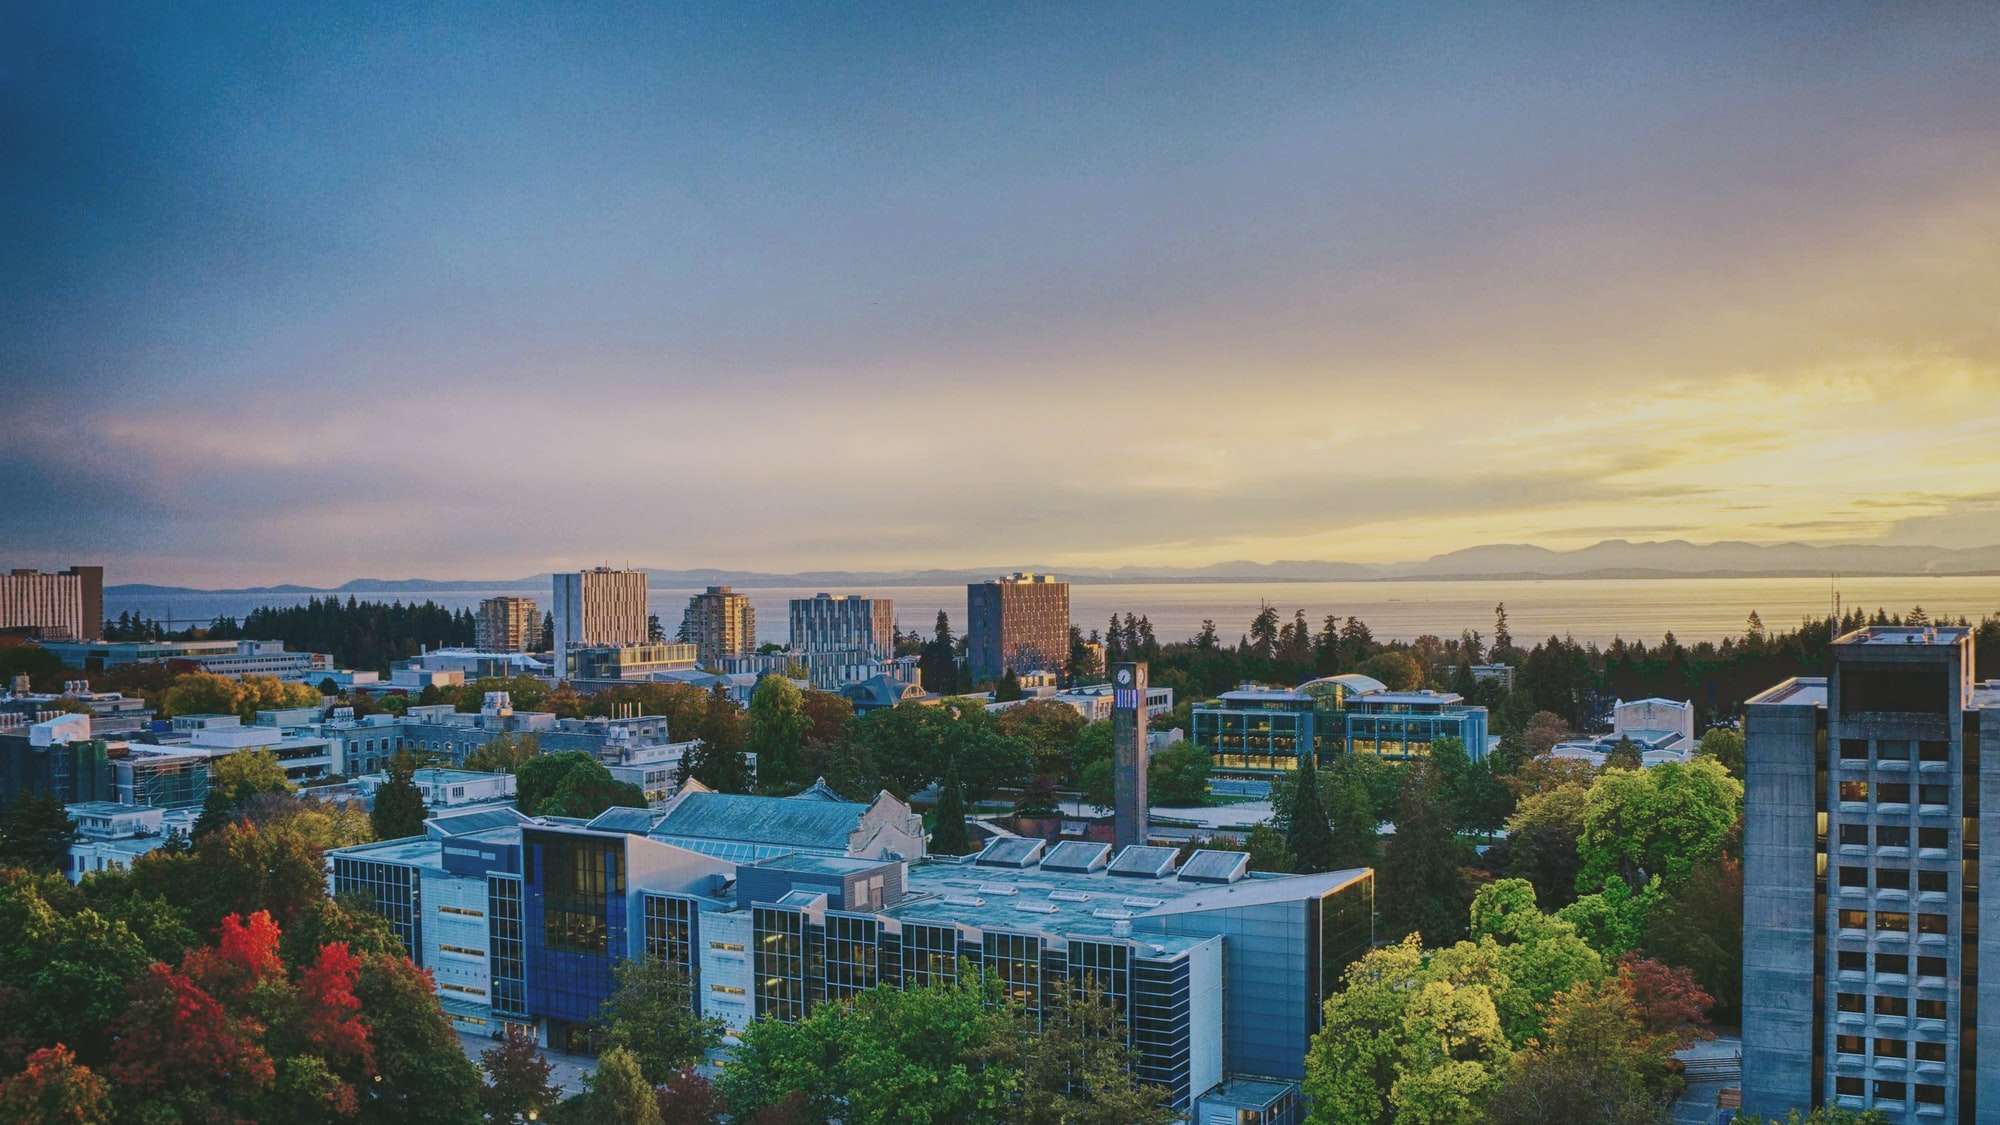 UBC campus, looking towards the Strait of Georgia